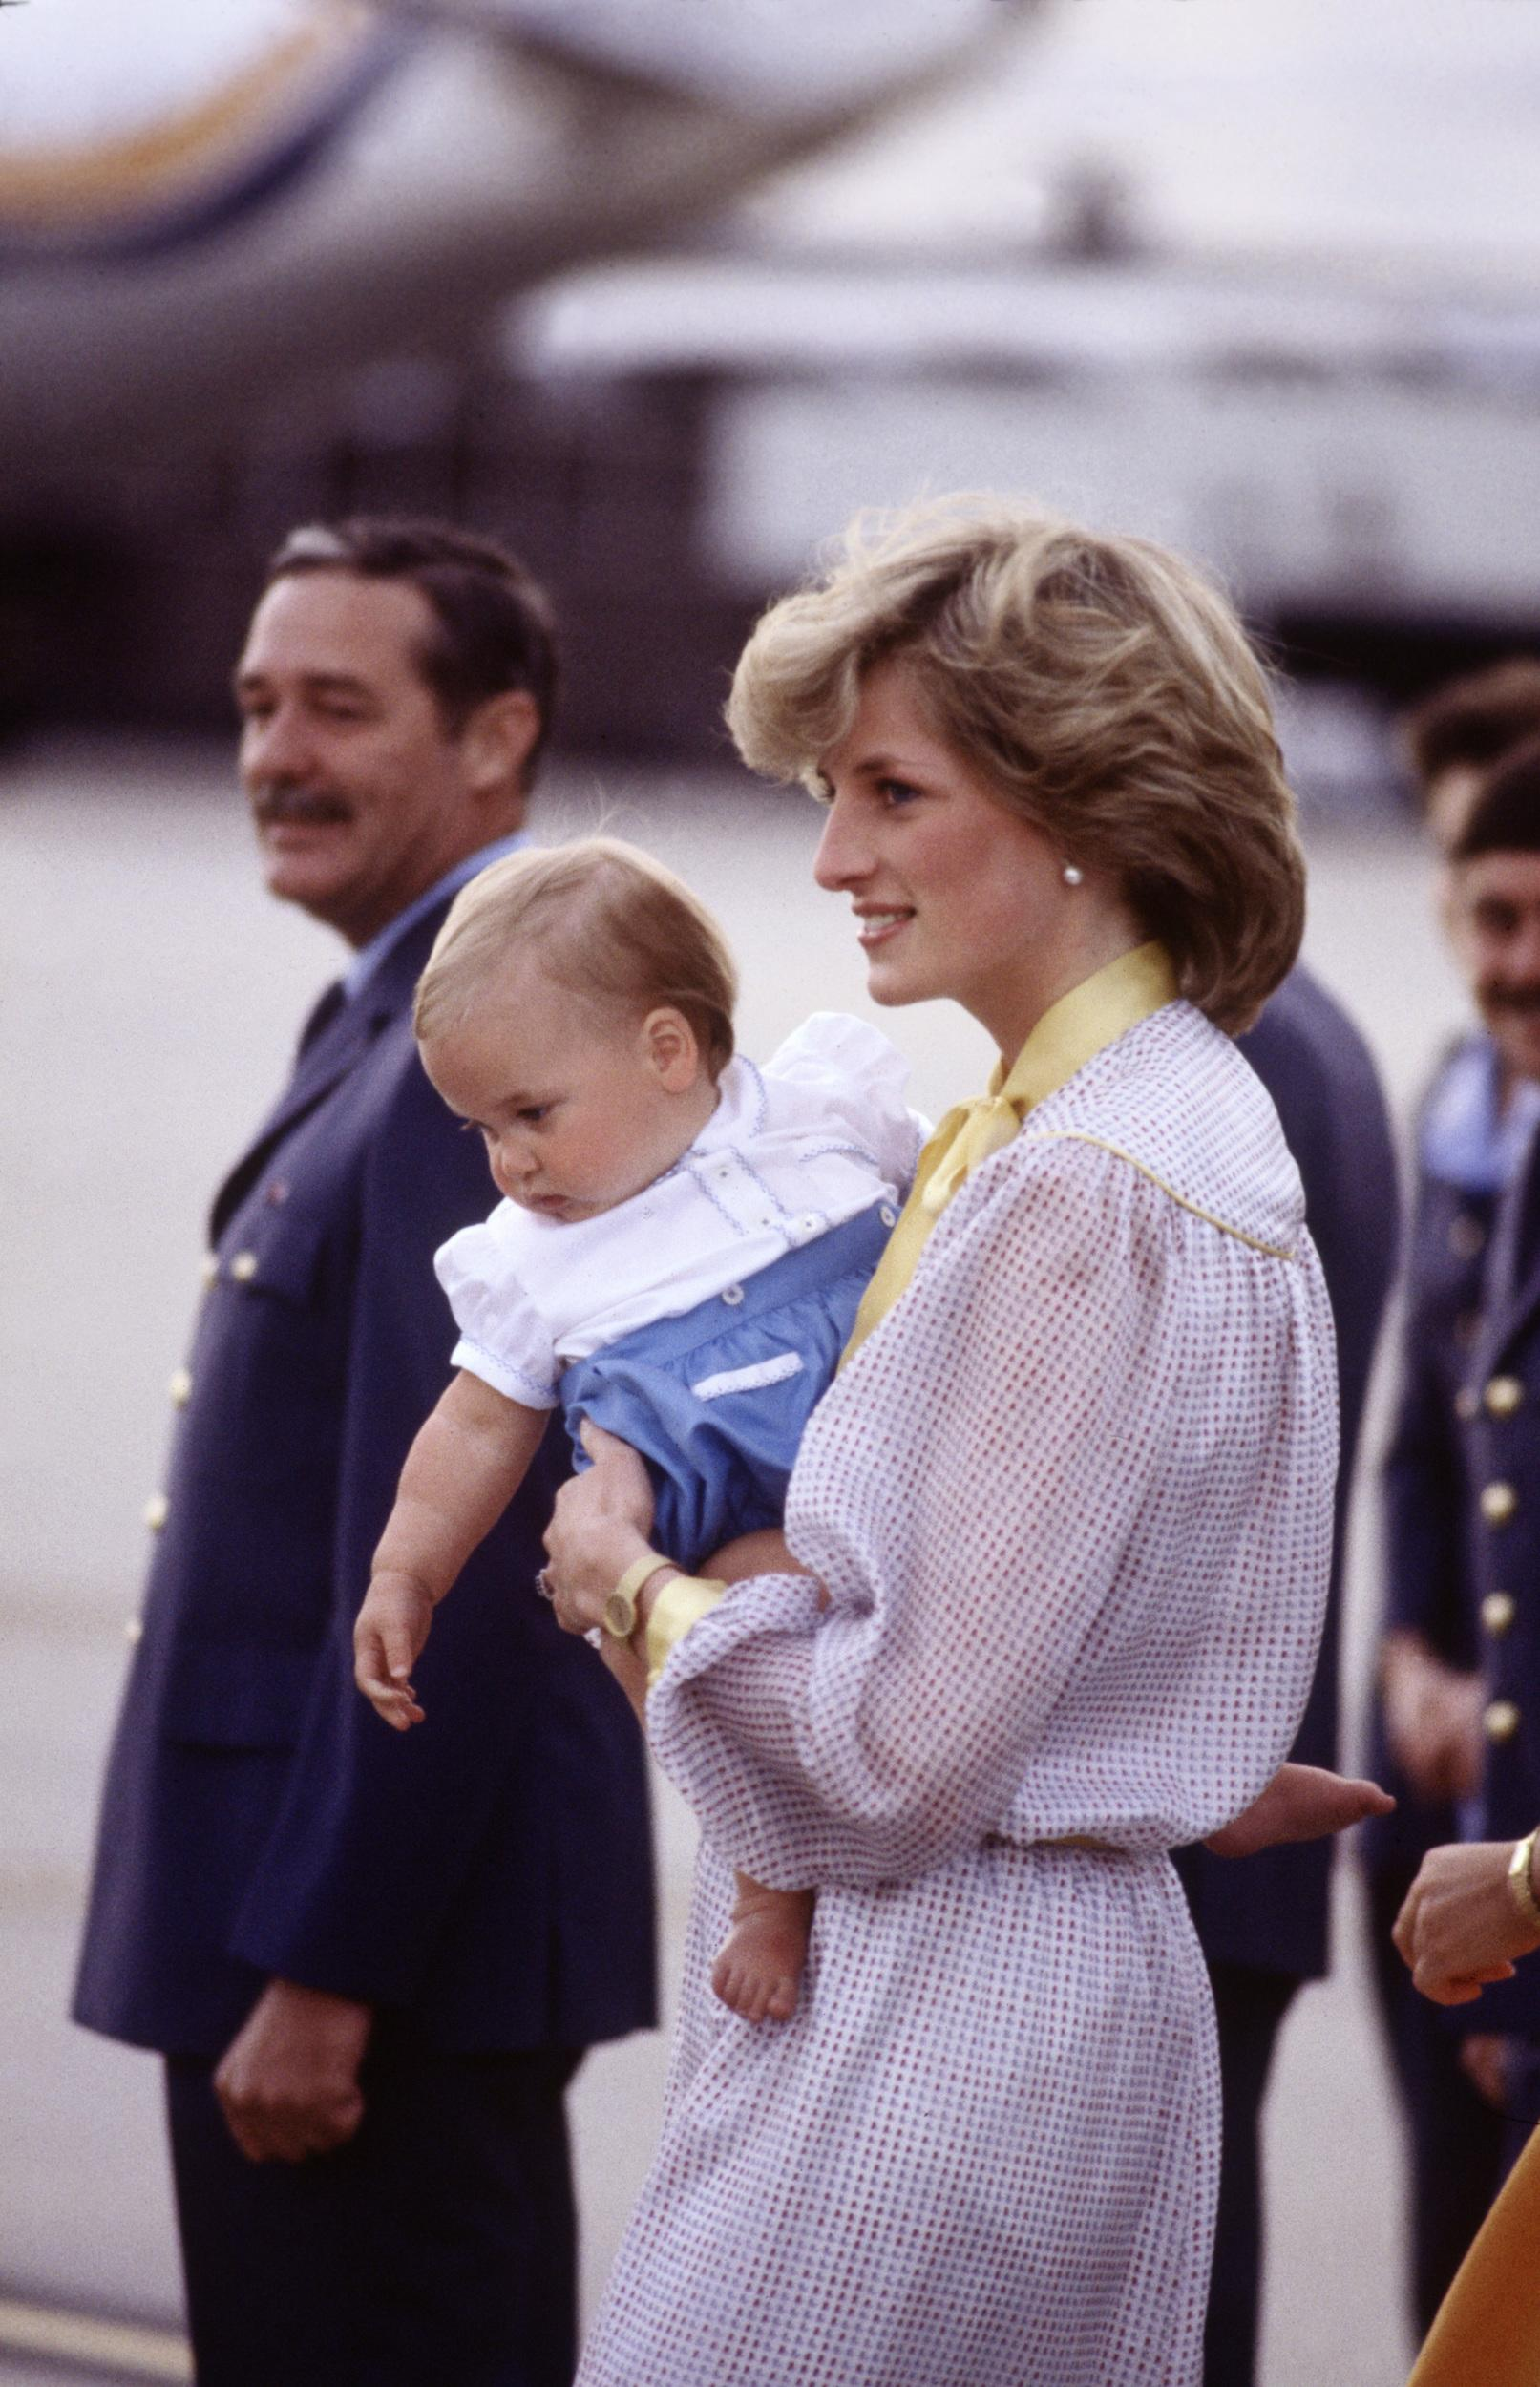 MELBOURNE - APRIL 16:  Diana Princess of Wales carries Prince William off of a plane at Melbourne Airport, Australia on April 16, 1983, at the end of the Royal Tour of Australia.(Photo by David Levenson/Getty Images)